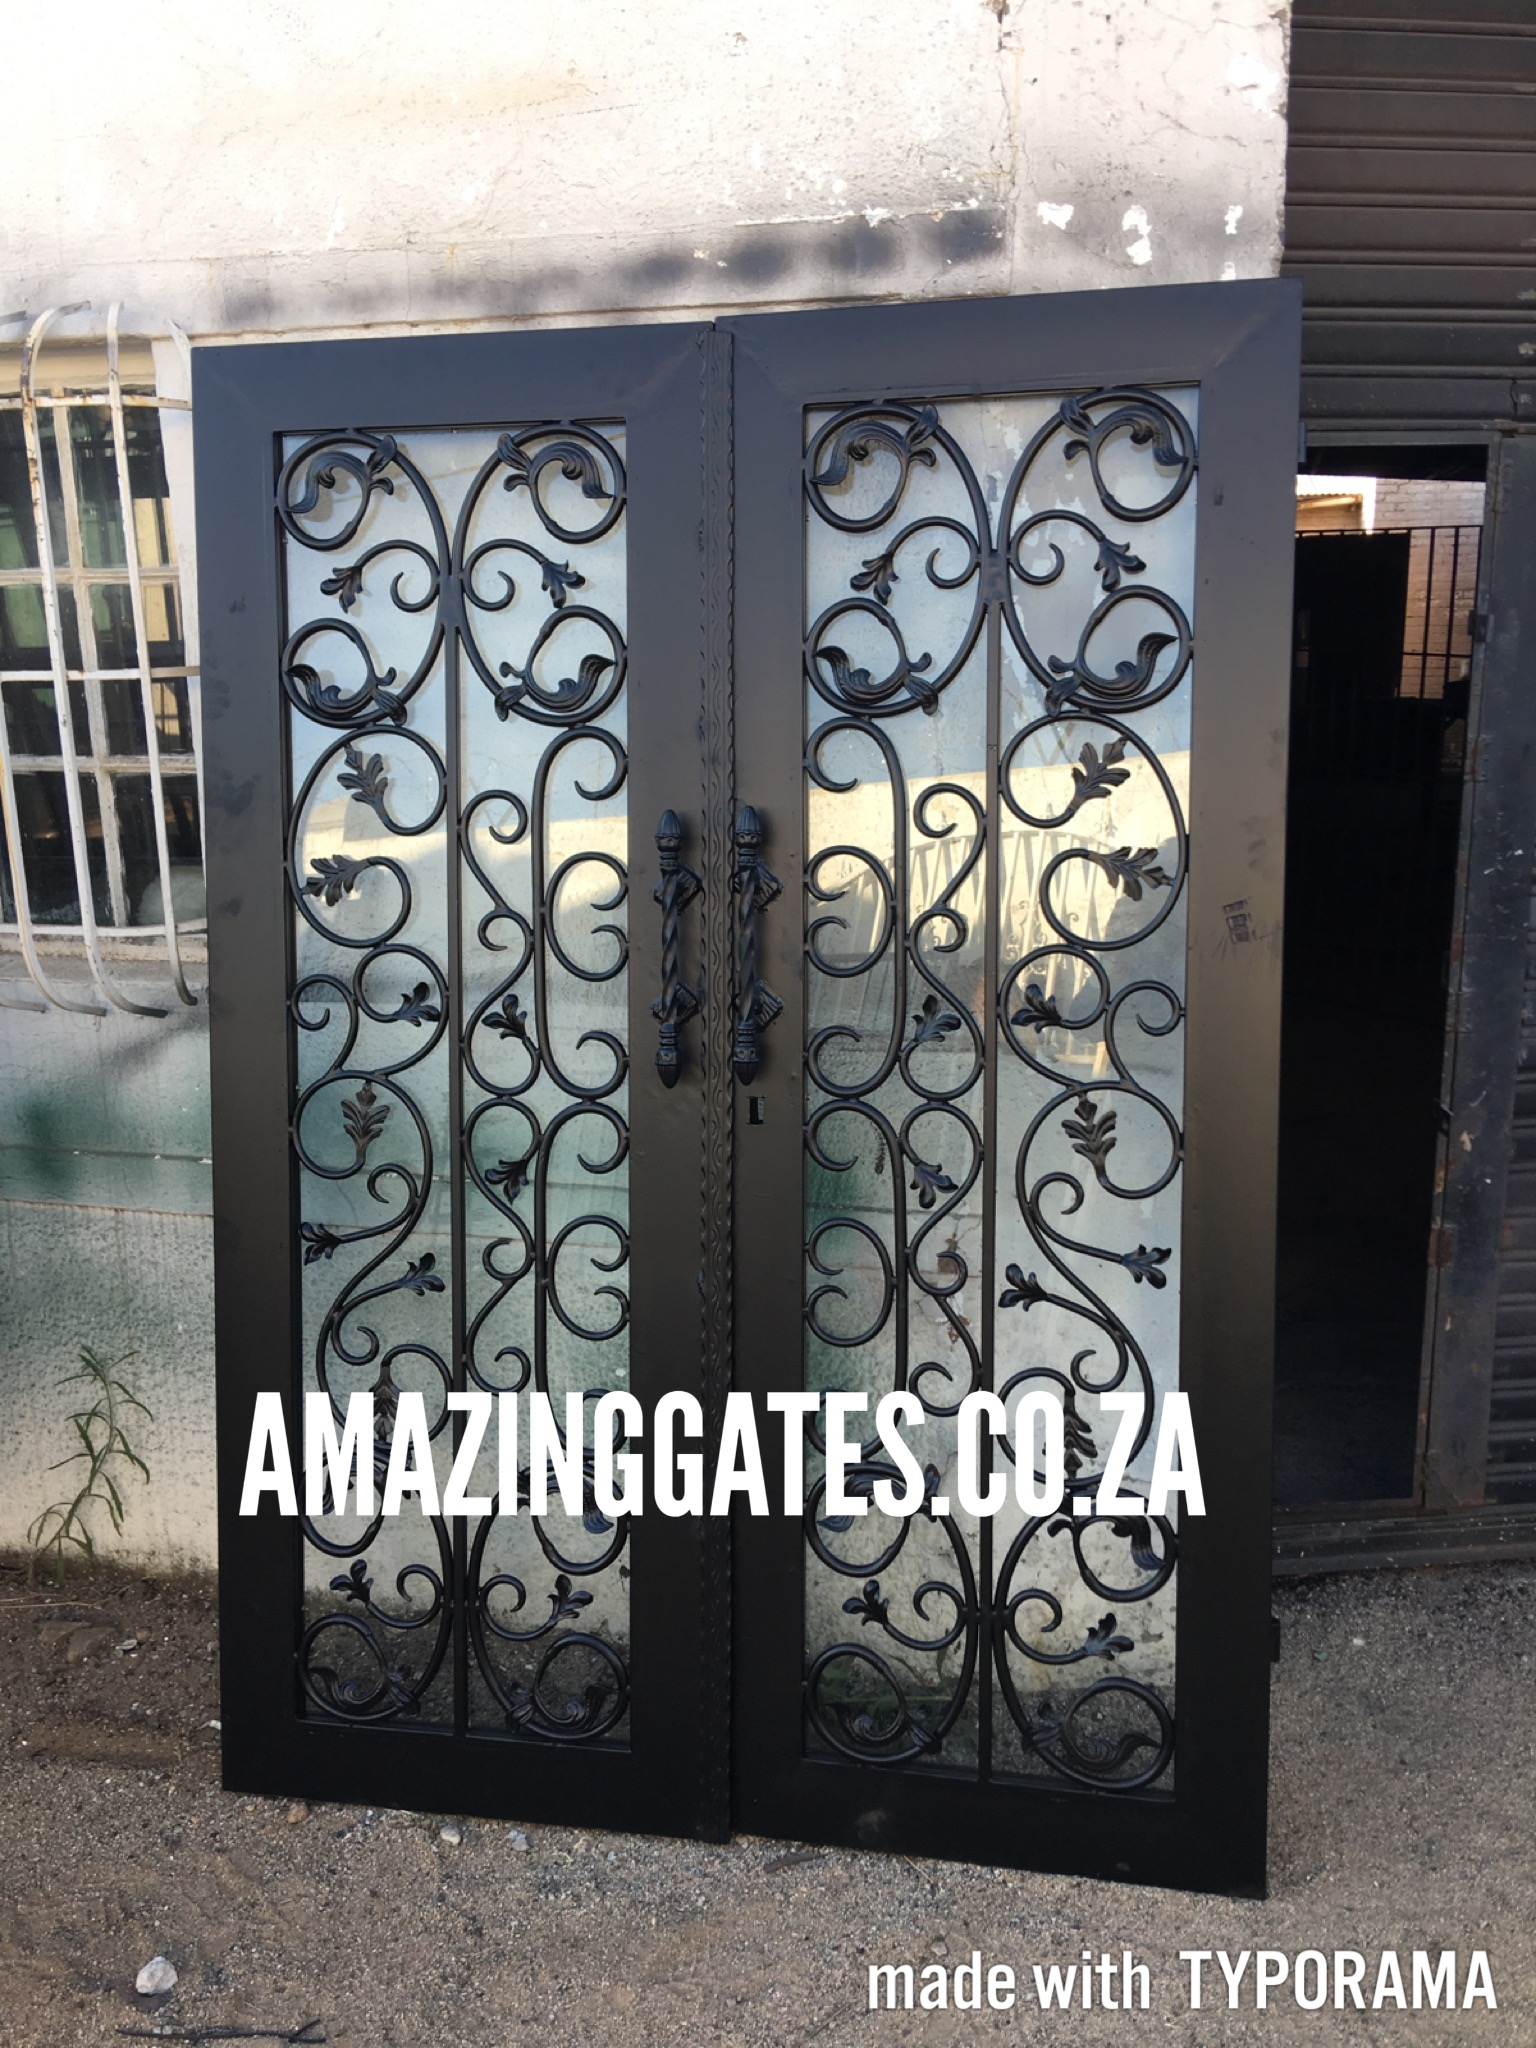 Wrought Iron Balustrades In Johannesburg Amazing Gates